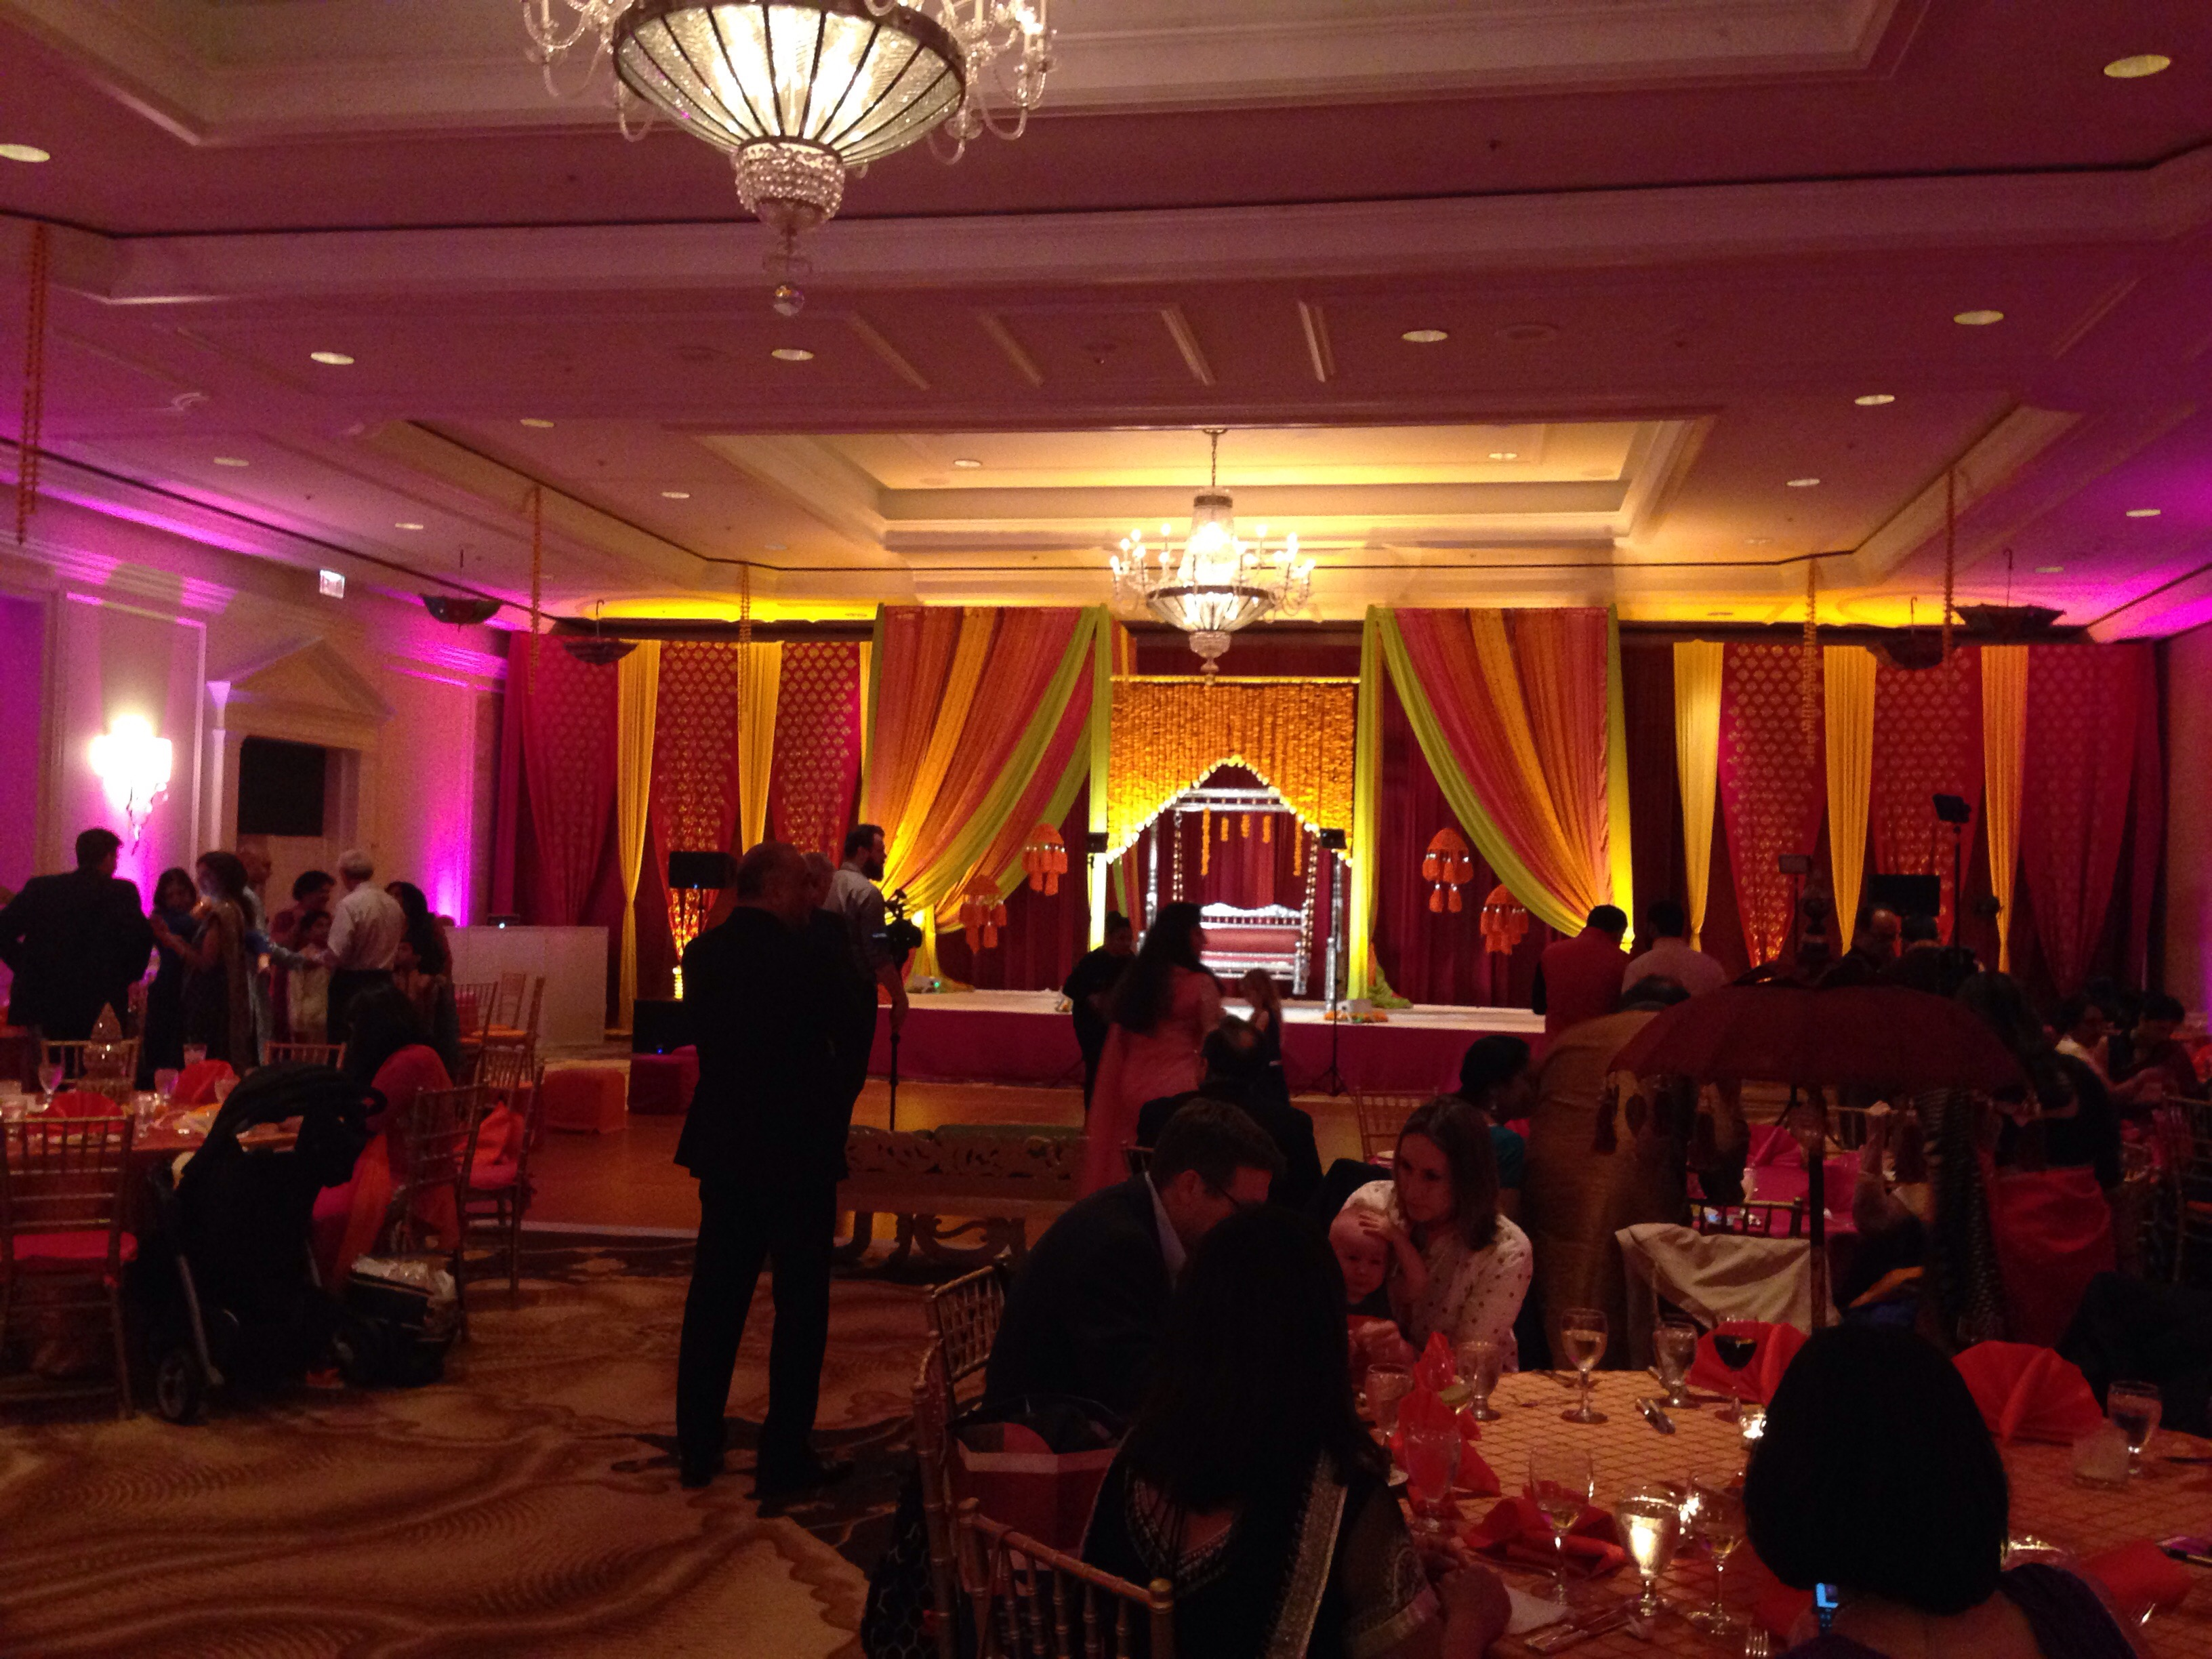 Our Wedding Events Began With The Mehndi Sangeet Latter Of Which Means Song In Sanskrit Hindi It Was A Night Filled Dance And